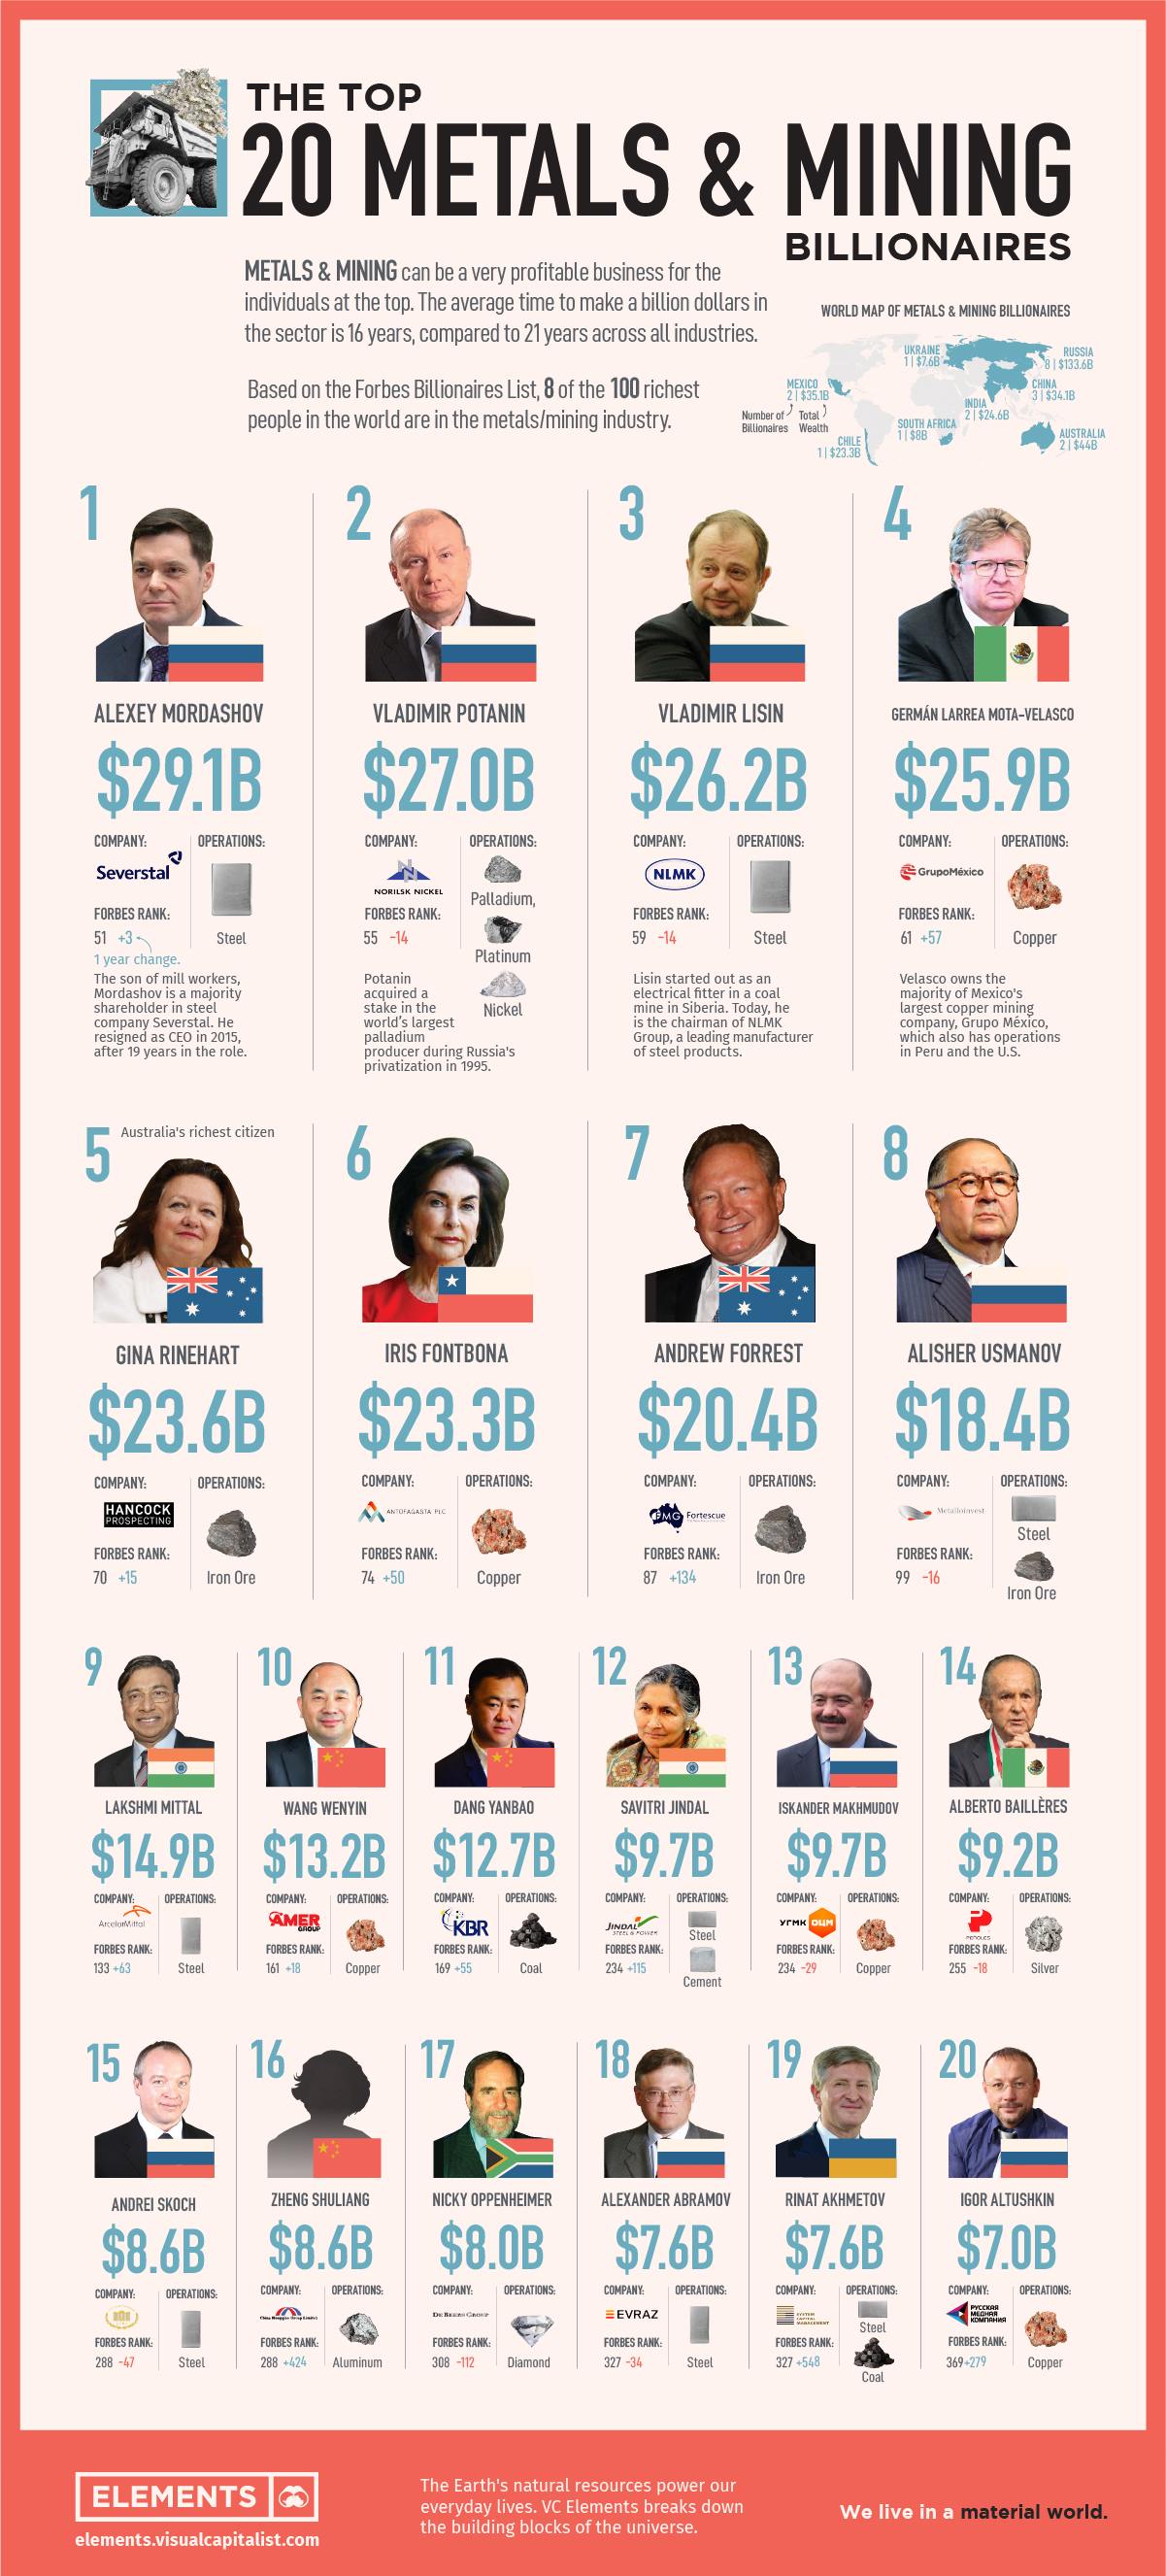 The Top 20 Mining Billionaires Ranked